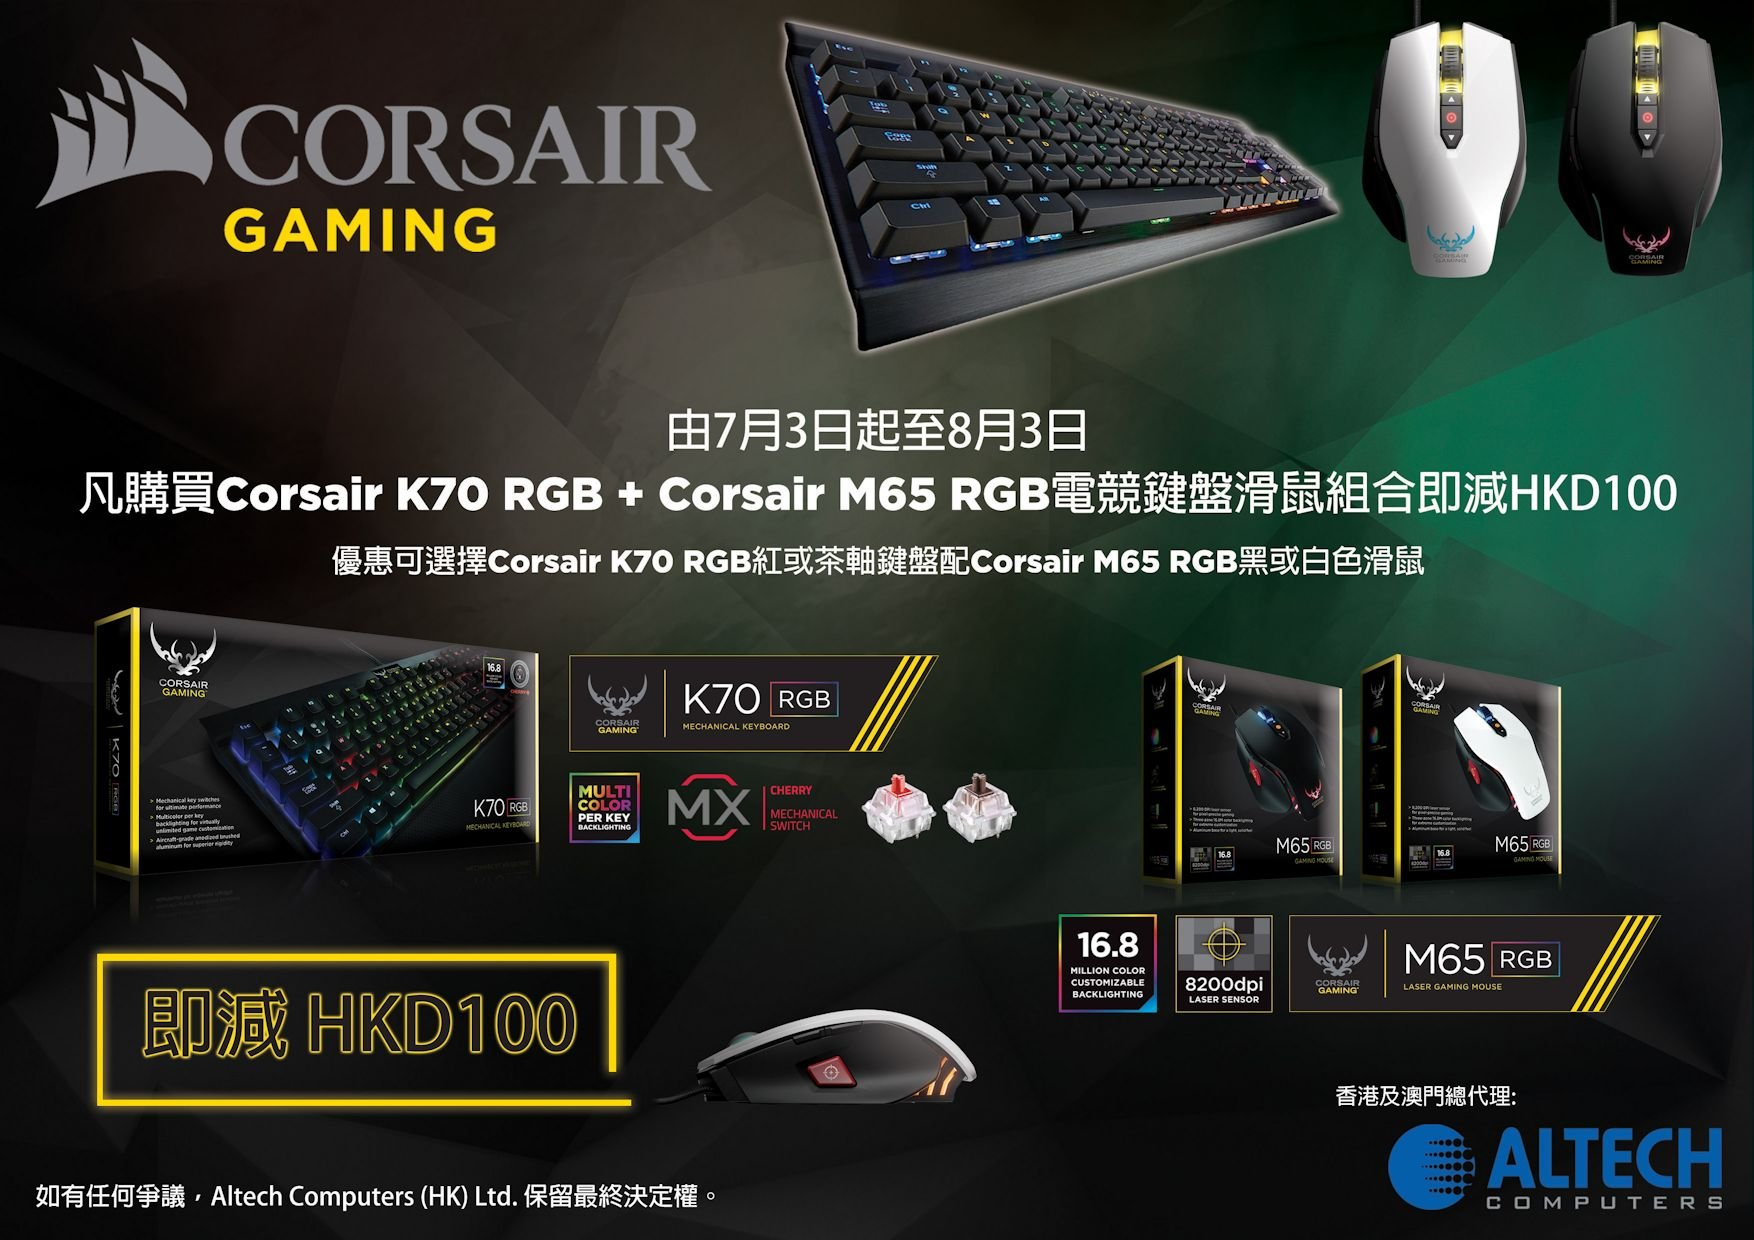 Corsair Gaming Promo